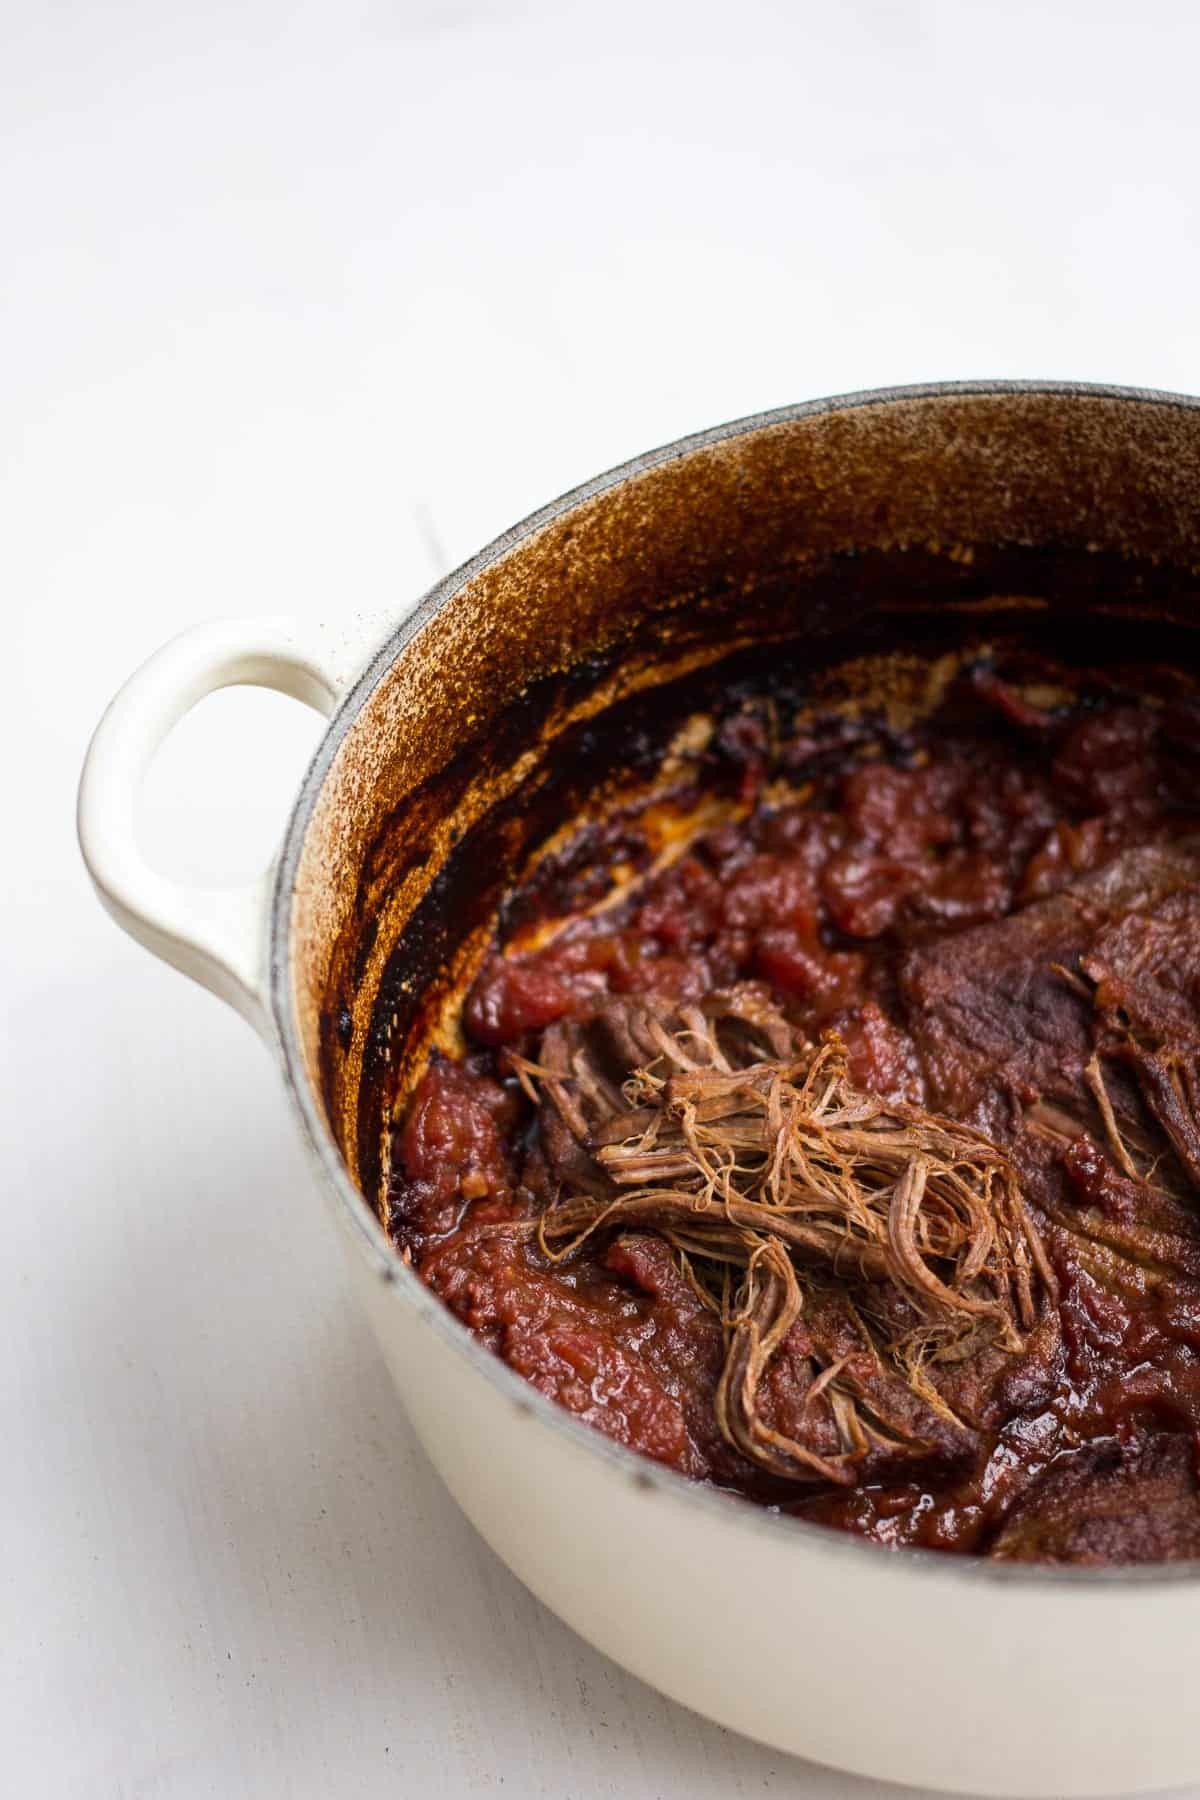 Pulled Beef nach Donna Hay |SOAP|KITCHEN|STYLE